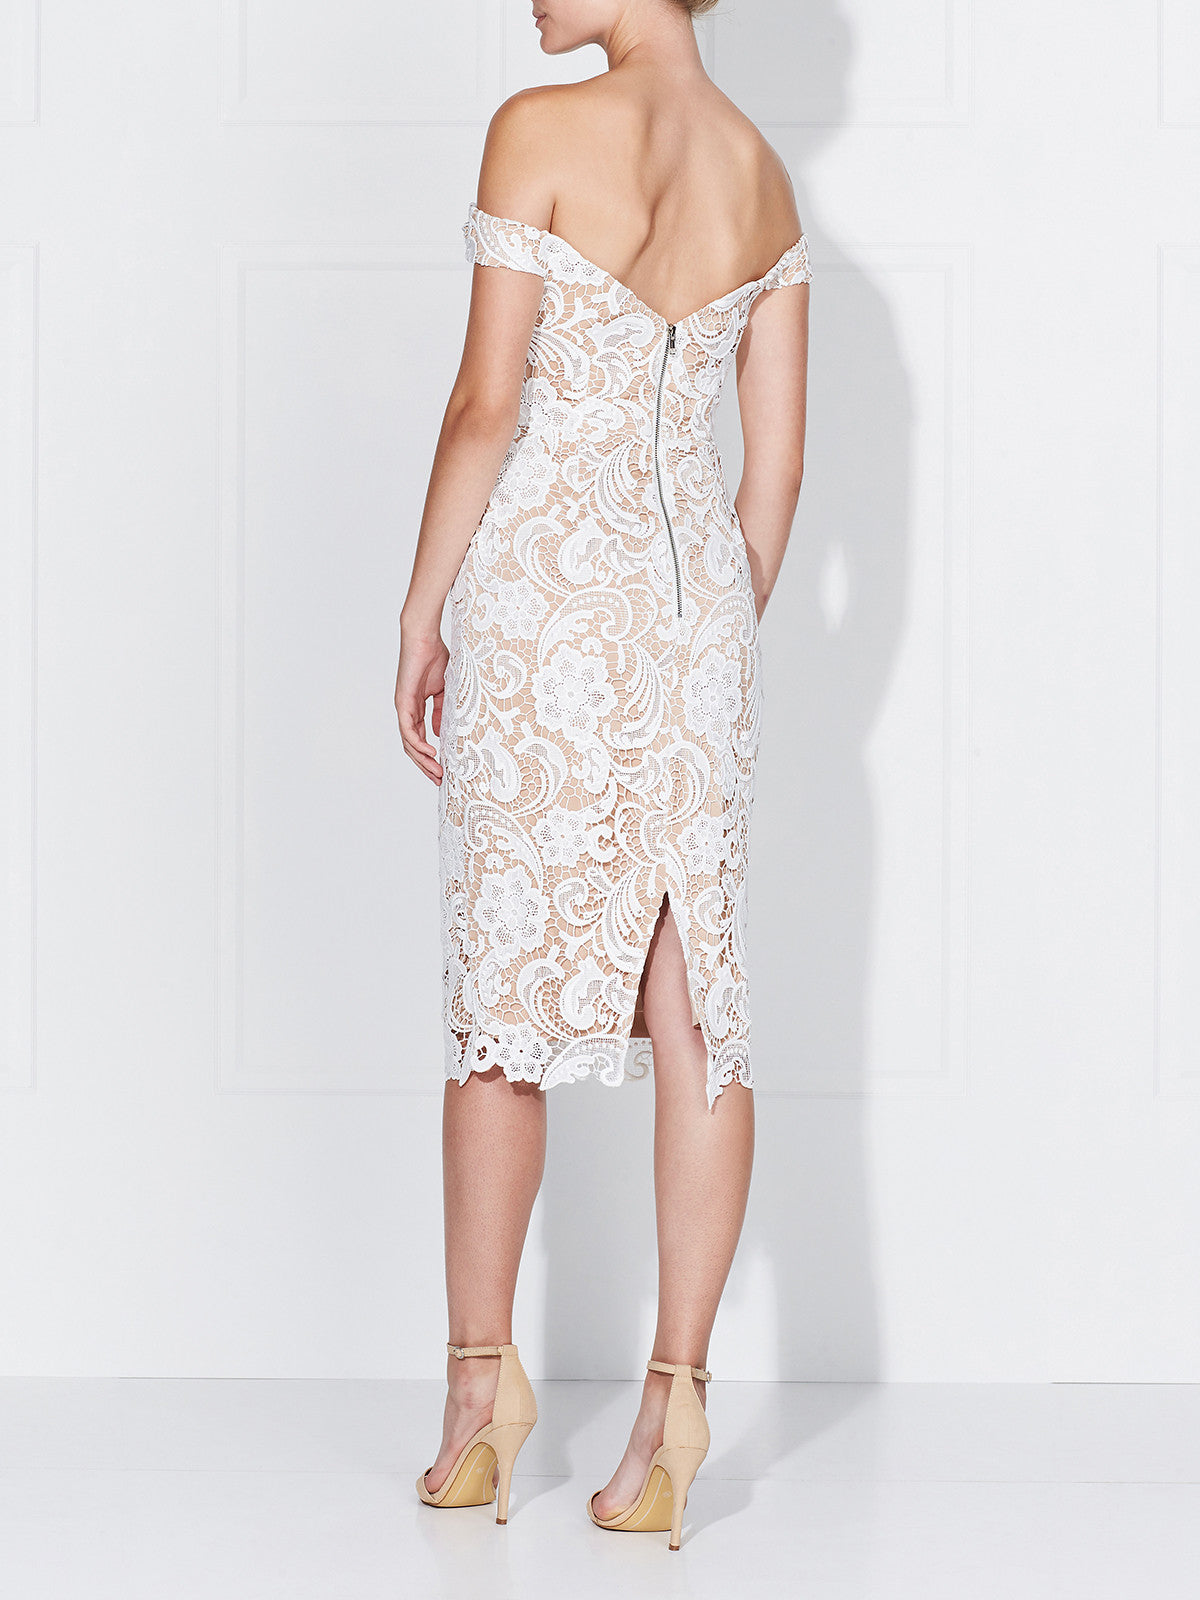 STELLA DRESS- IVORY/NUDE